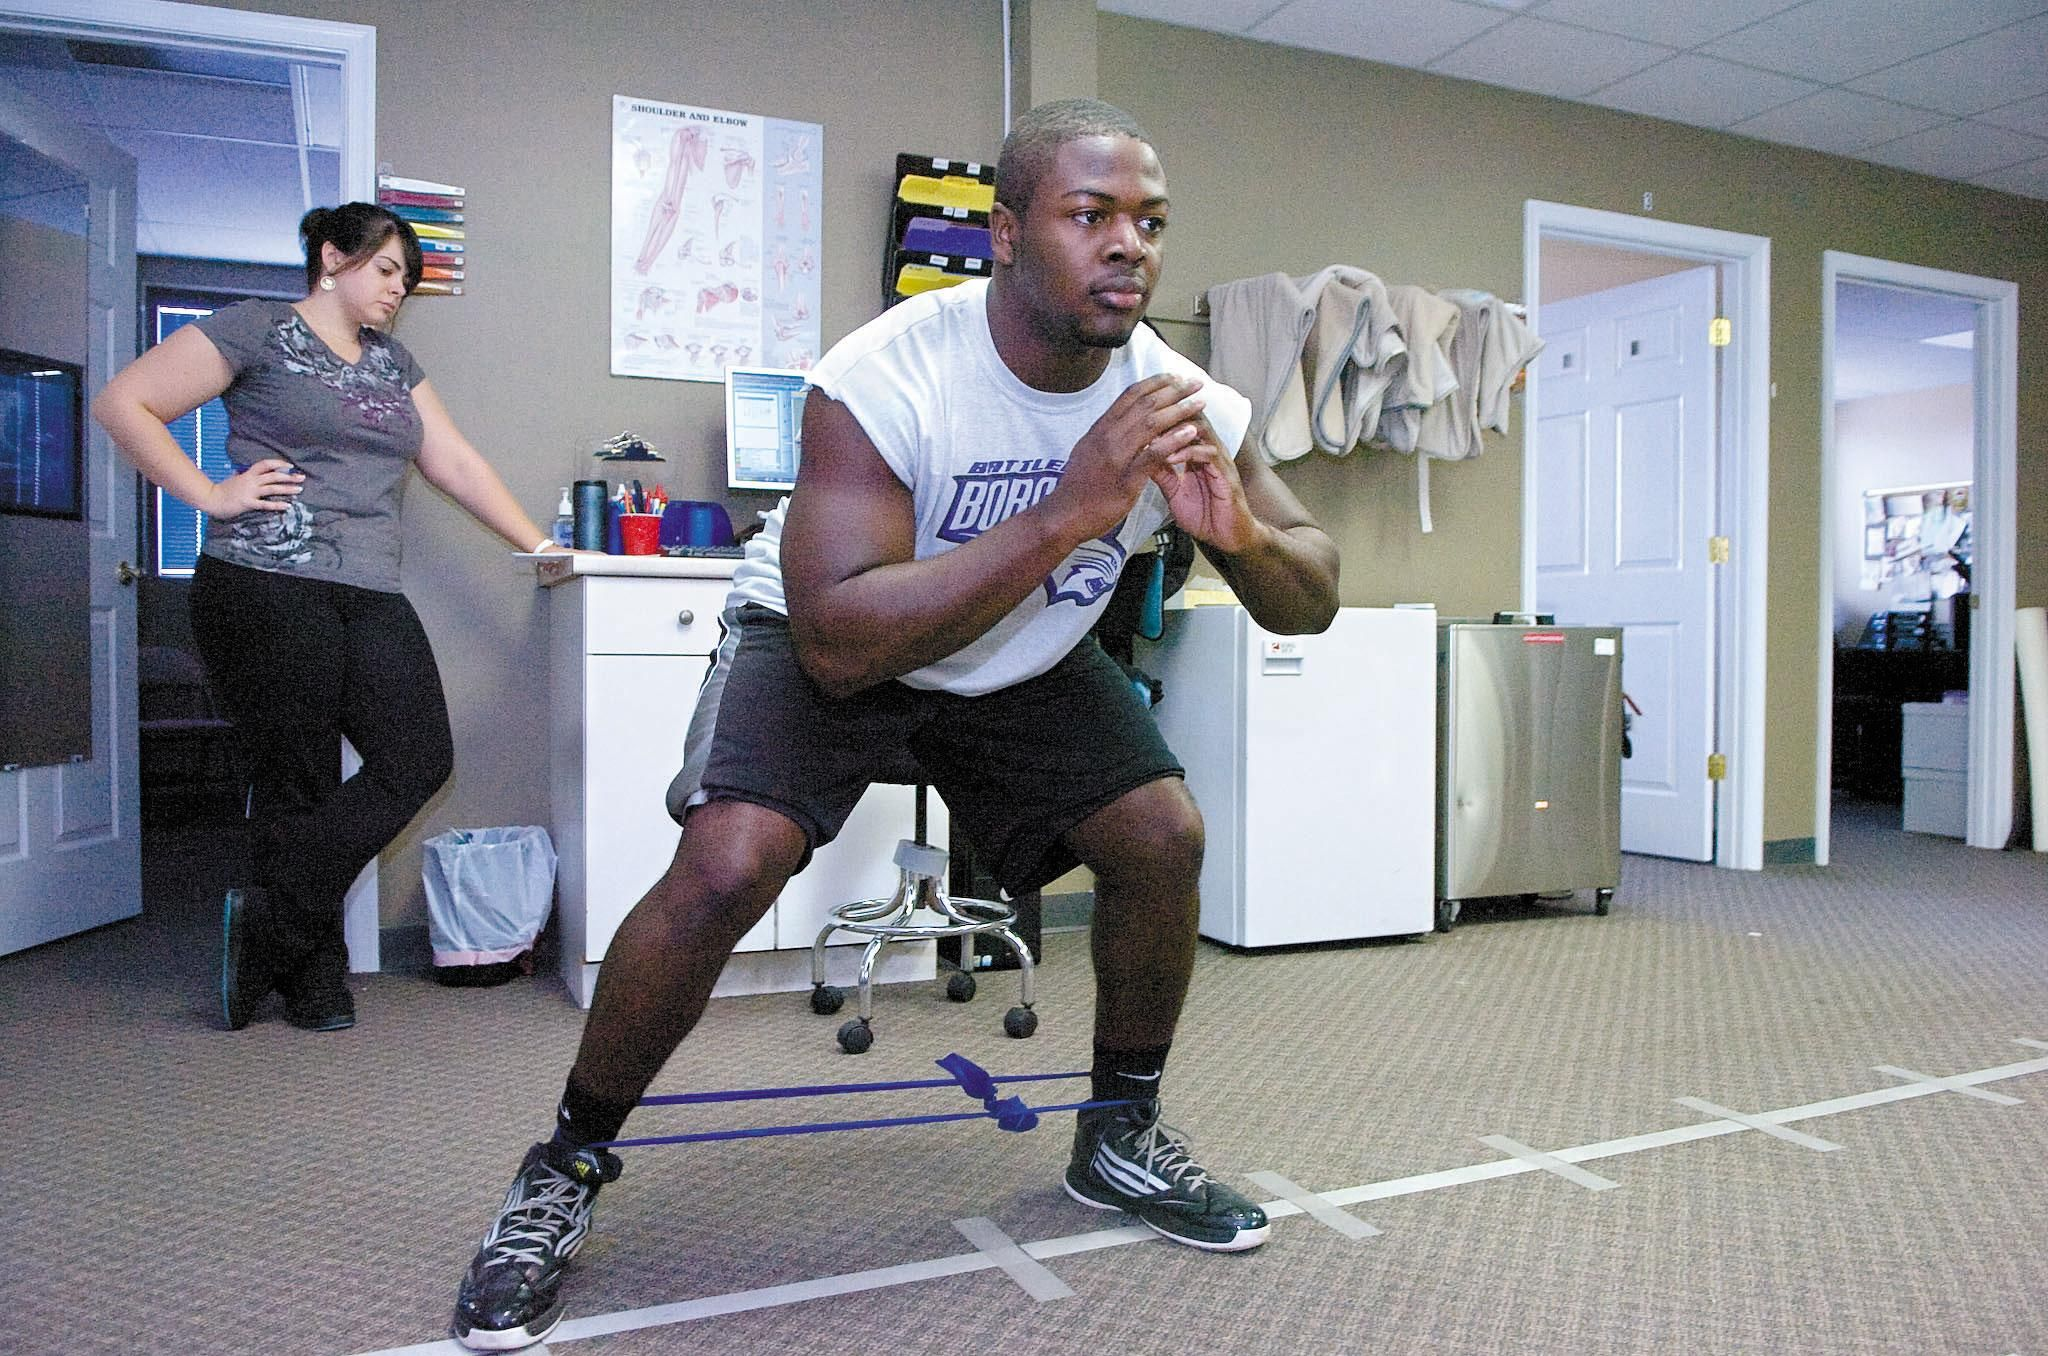 Physical therapy helped this high school football player